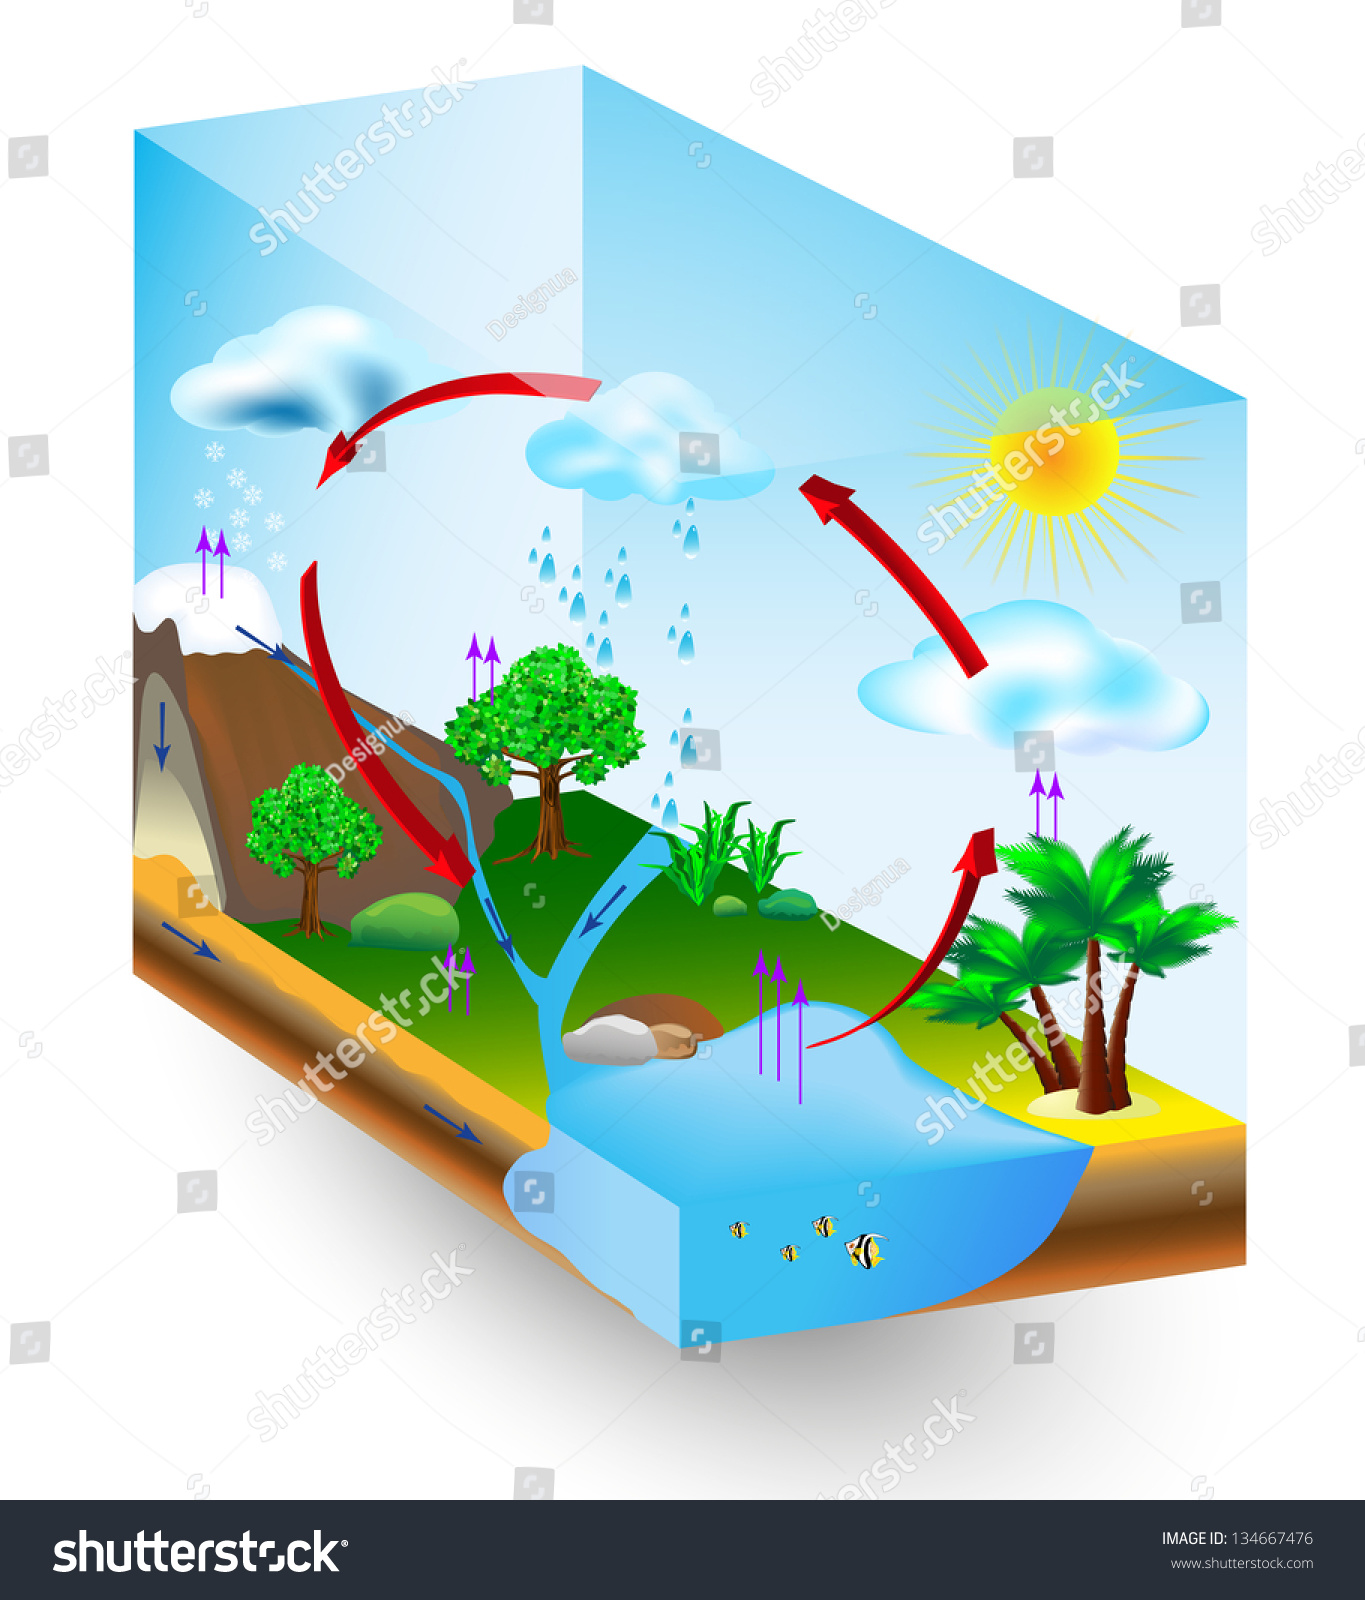 hight resolution of water cycle diagram vector condensation evaporation and environment